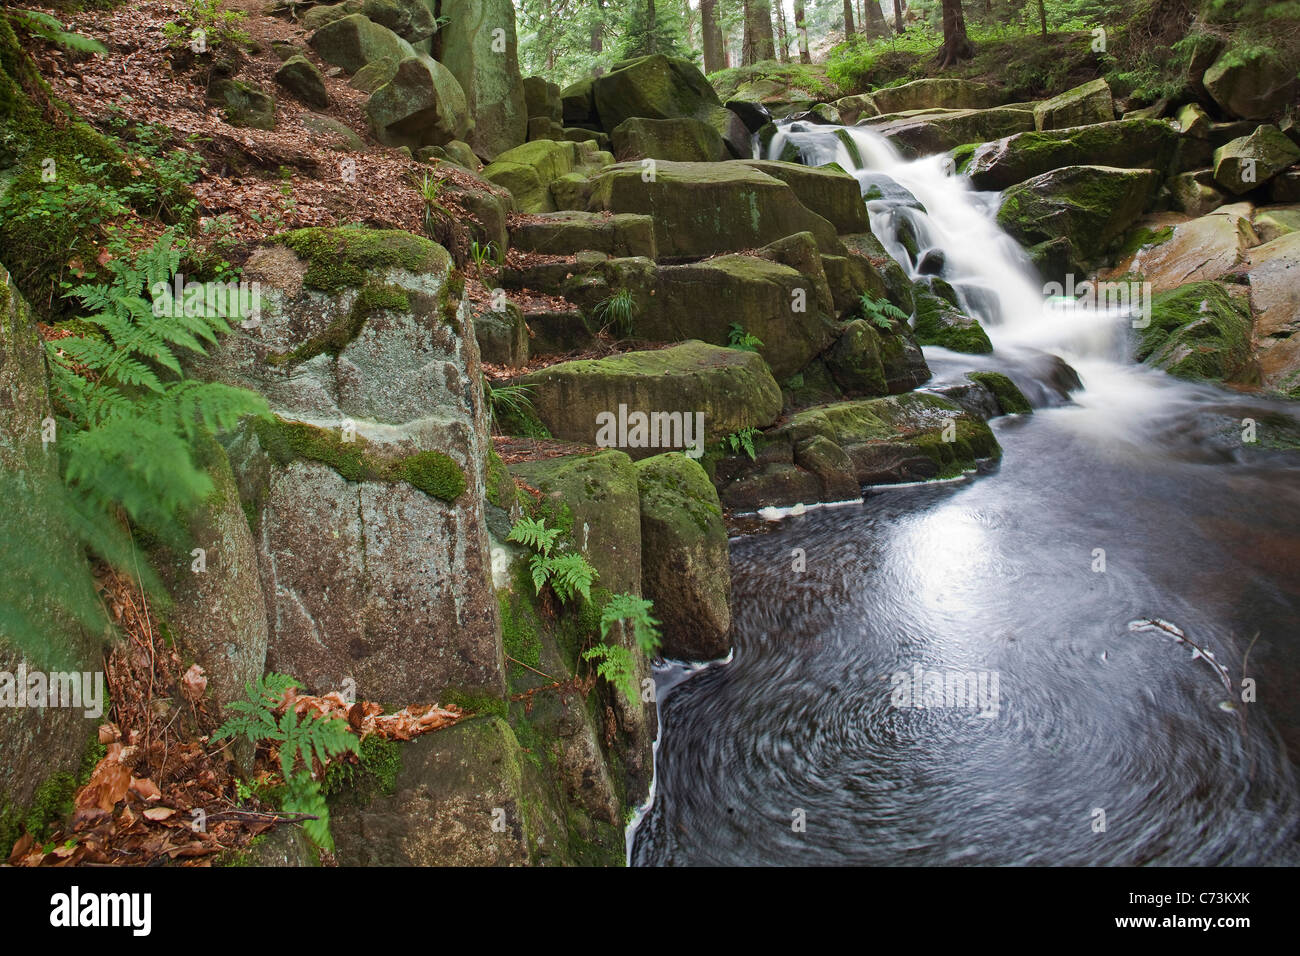 Waterfalls, Ilse mountain stream flowing over mossy rocks, Heinrich Heine walking trail, Harz Mountains, Saxony Stock Photo